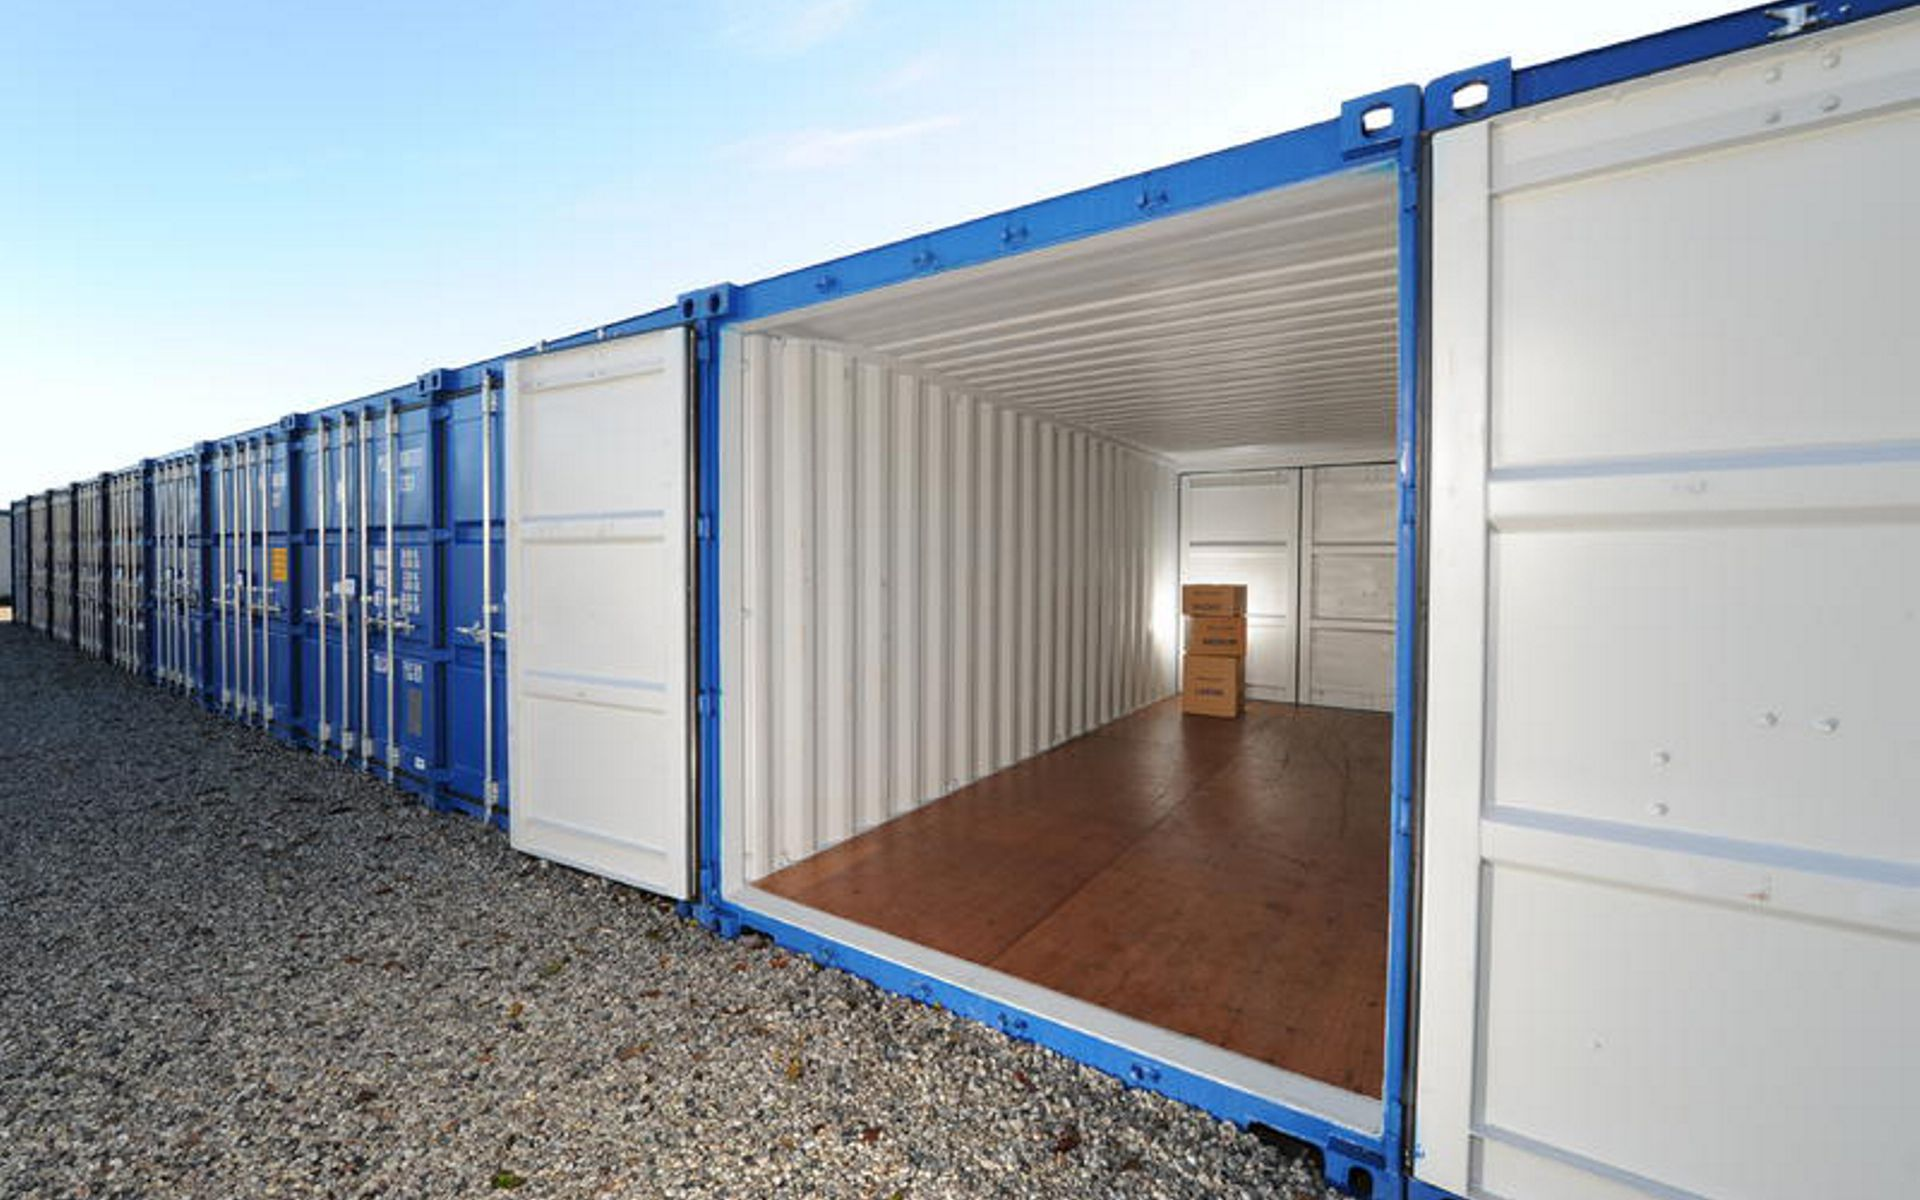 southwick storage pay 4 weeks get 4 weeks free storage